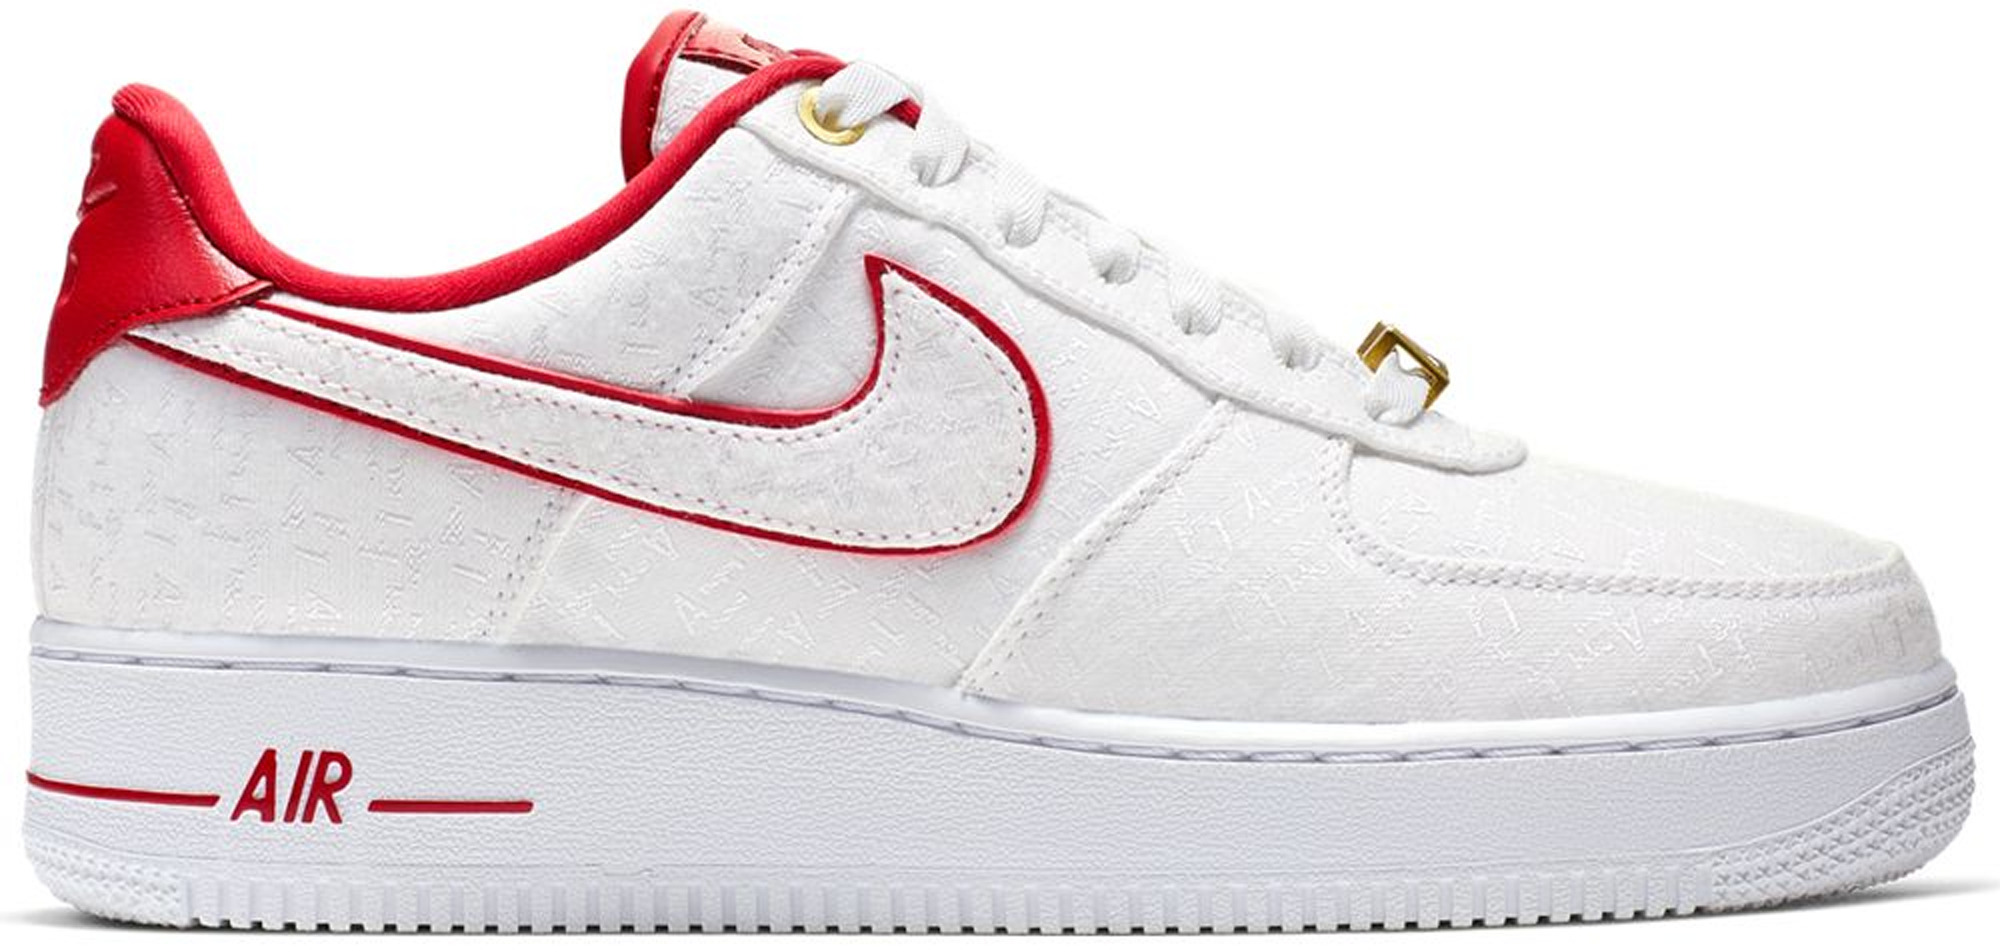 Nike Air Force 1 Low Lux White Red (W